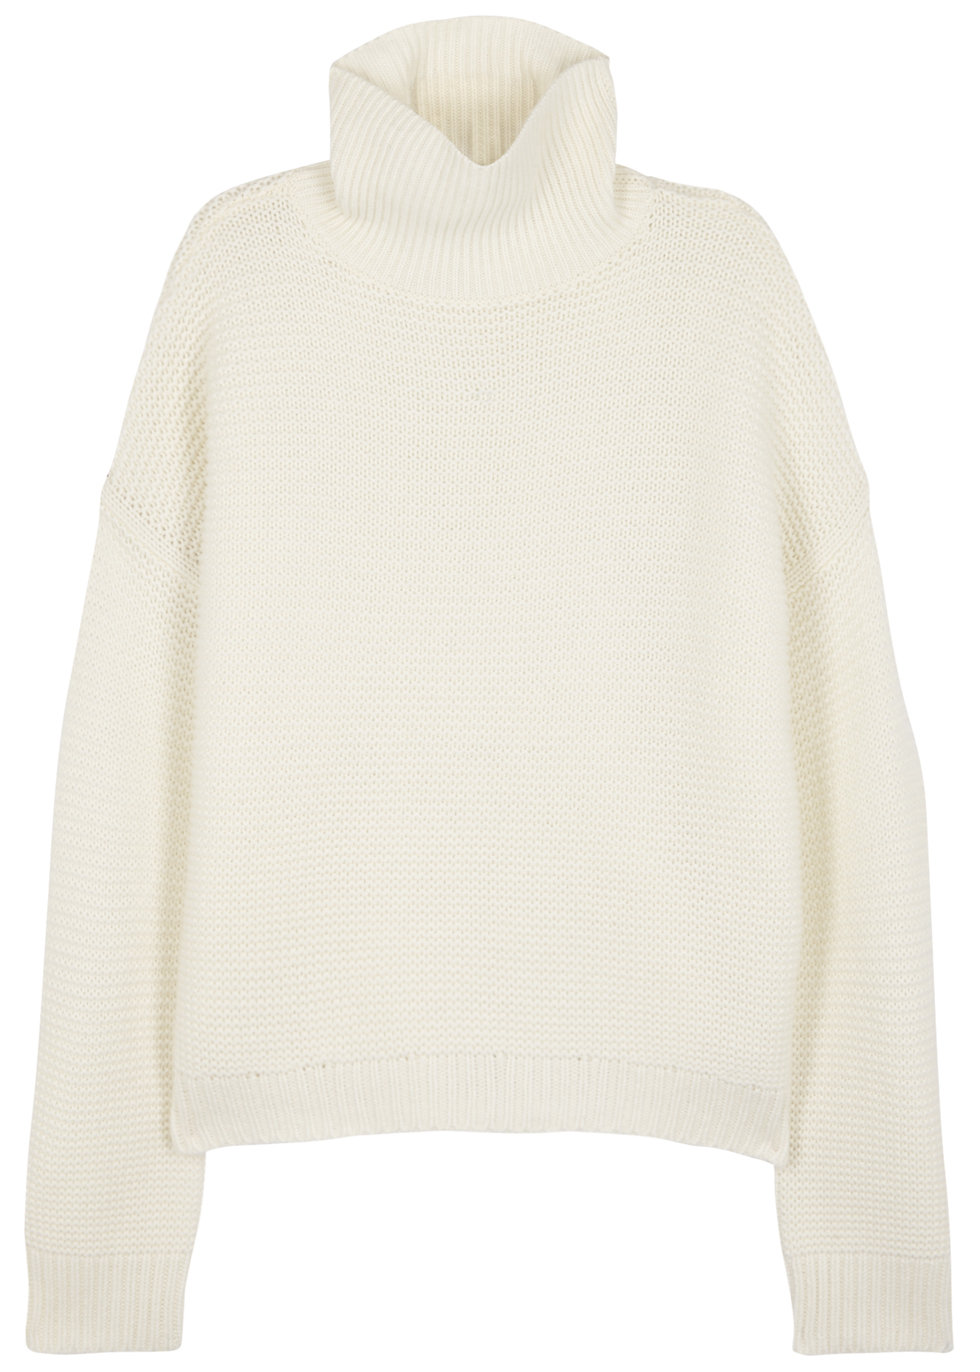 Ivory Waffle Knit Wool Blend Jumper - pattern: plain; neckline: roll neck; style: standard; predominant colour: ivory/cream; occasions: casual; length: standard; fibres: wool - mix; fit: loose; sleeve length: long sleeve; sleeve style: standard; texture group: knits/crochet; pattern type: knitted - fine stitch; wardrobe: basic; season: a/w 2016